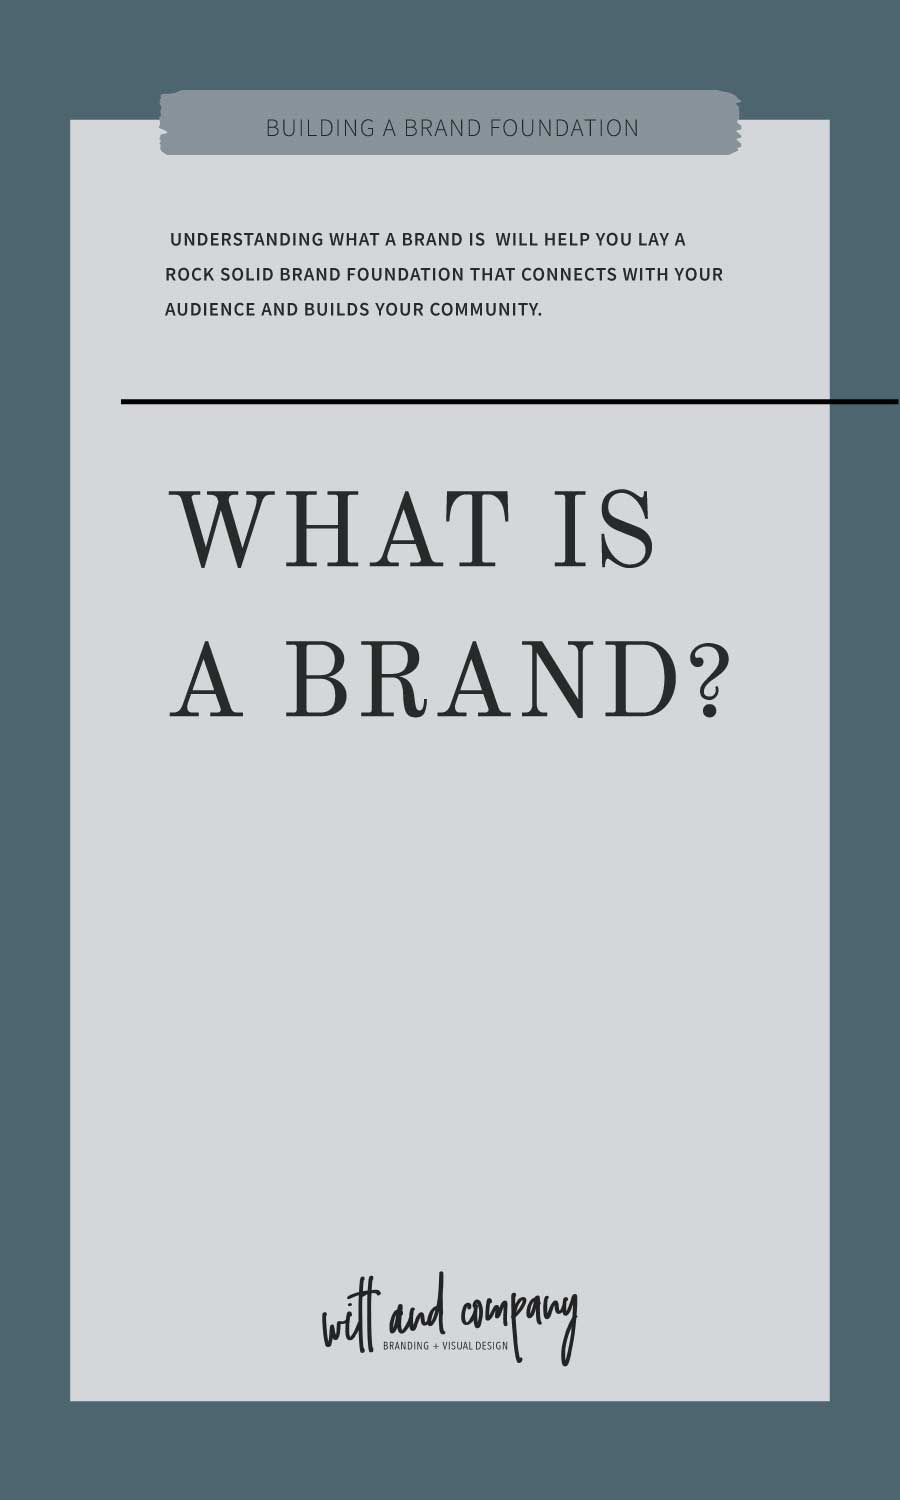 Build a Brand Foundation: What is a Brand?